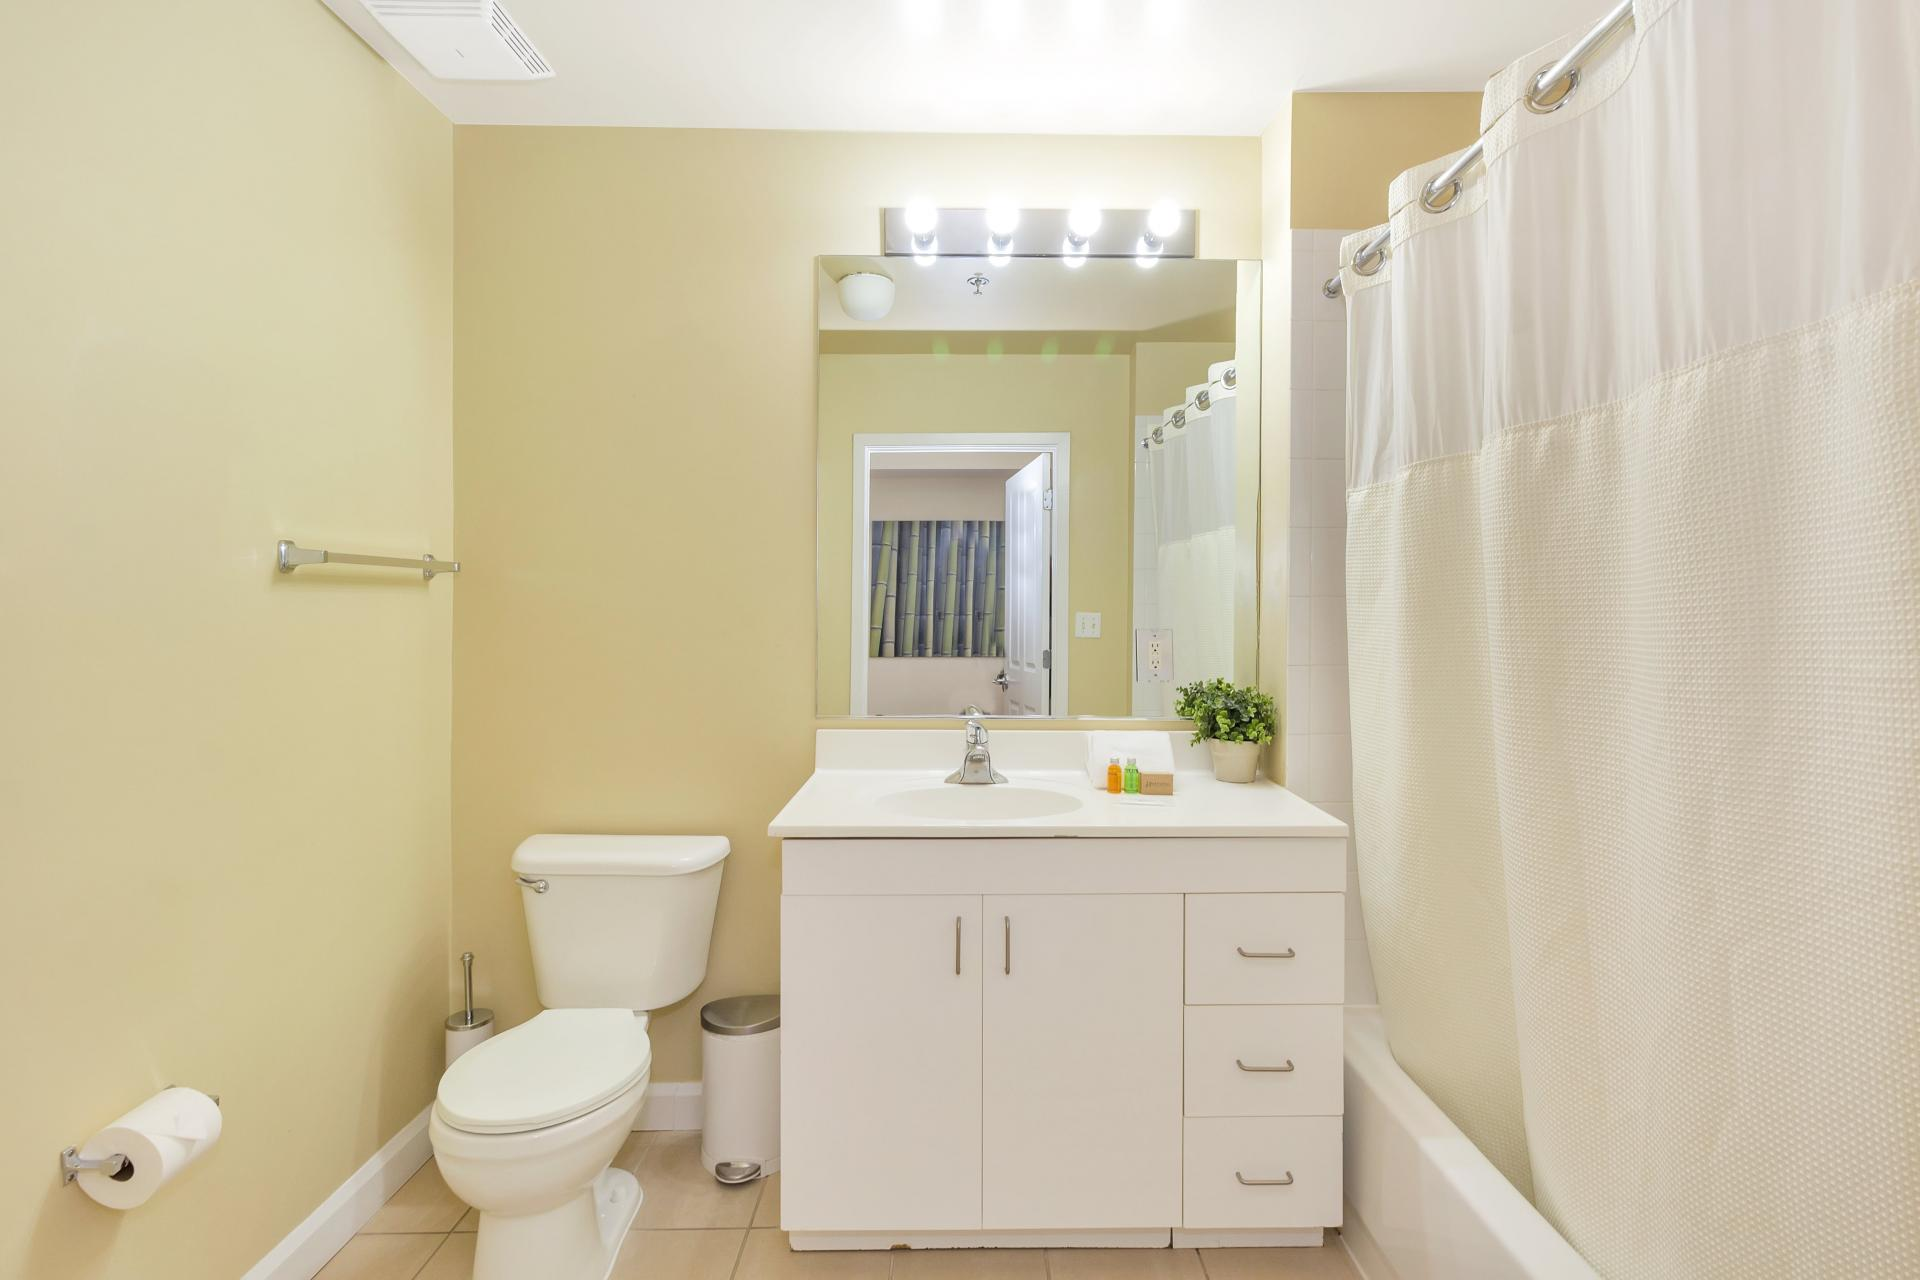 Bathroom at Exchange Place Station Apartments